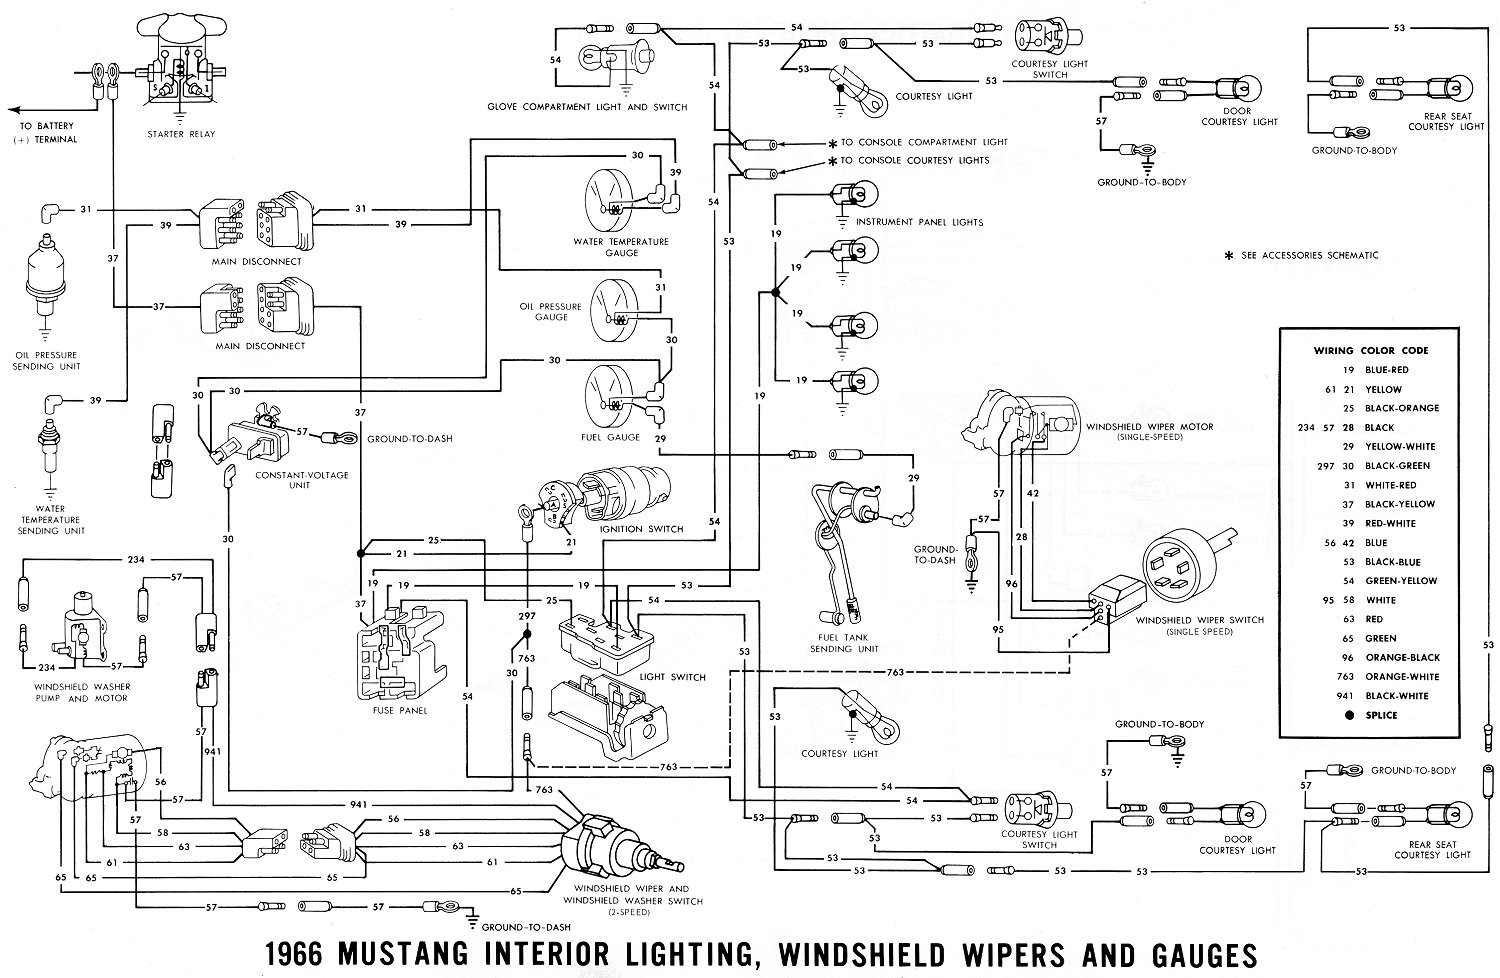 Accessories Electrical Wiring Diagram Of 1966 Ford Mustang Wire 2002 3 8 Engine Diagrams Average Joe Restoration